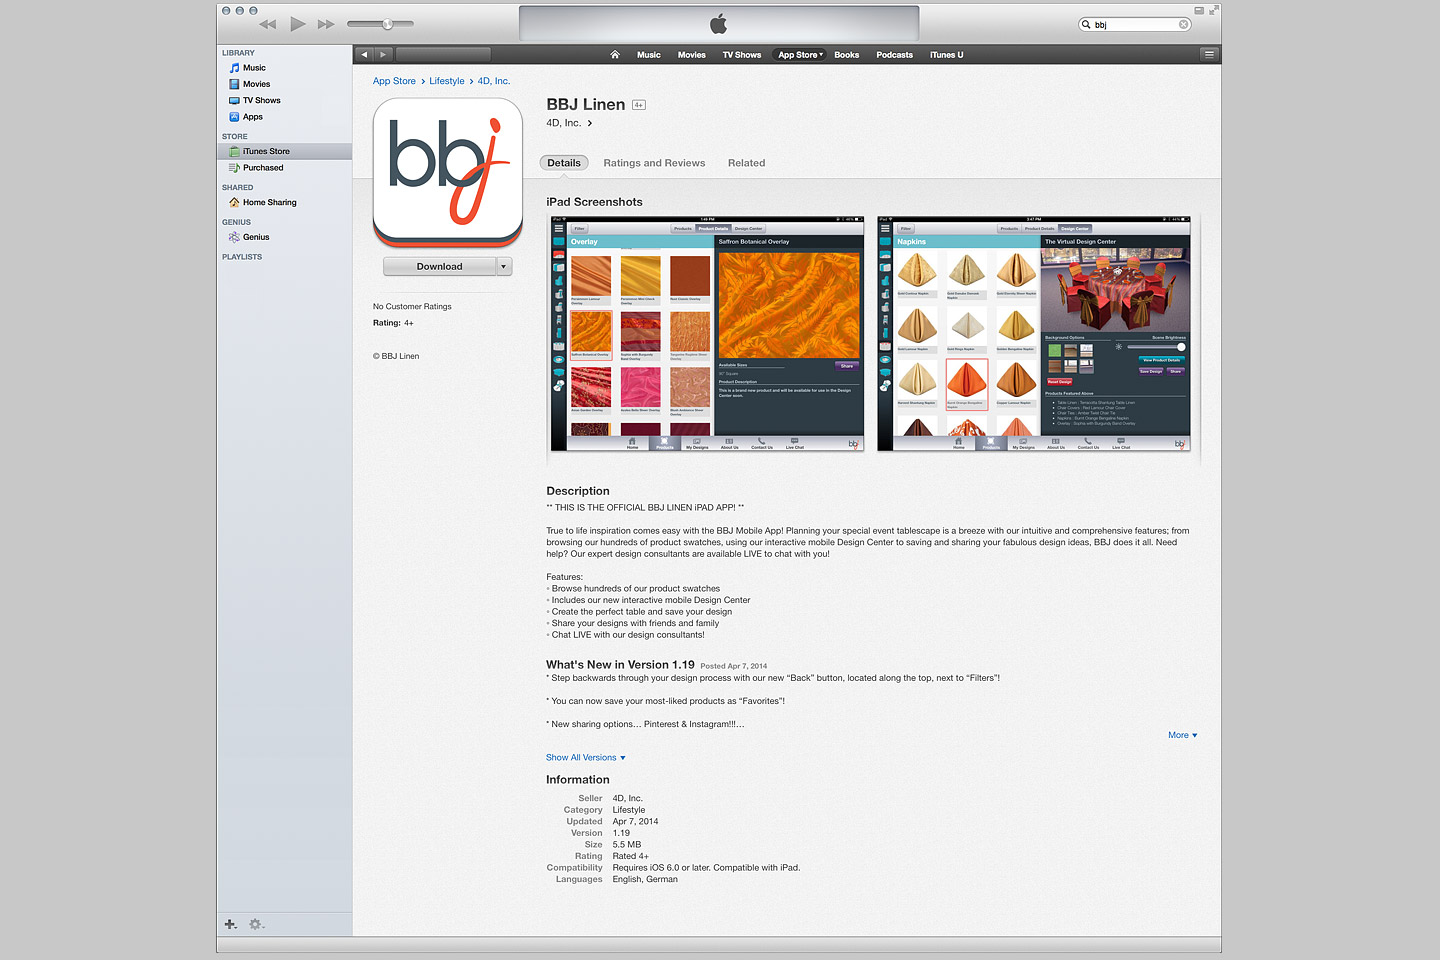 a screen capture of the apple itunes appstore, featuring the bbj linen ios ipad app designed developed by 4d, inc.